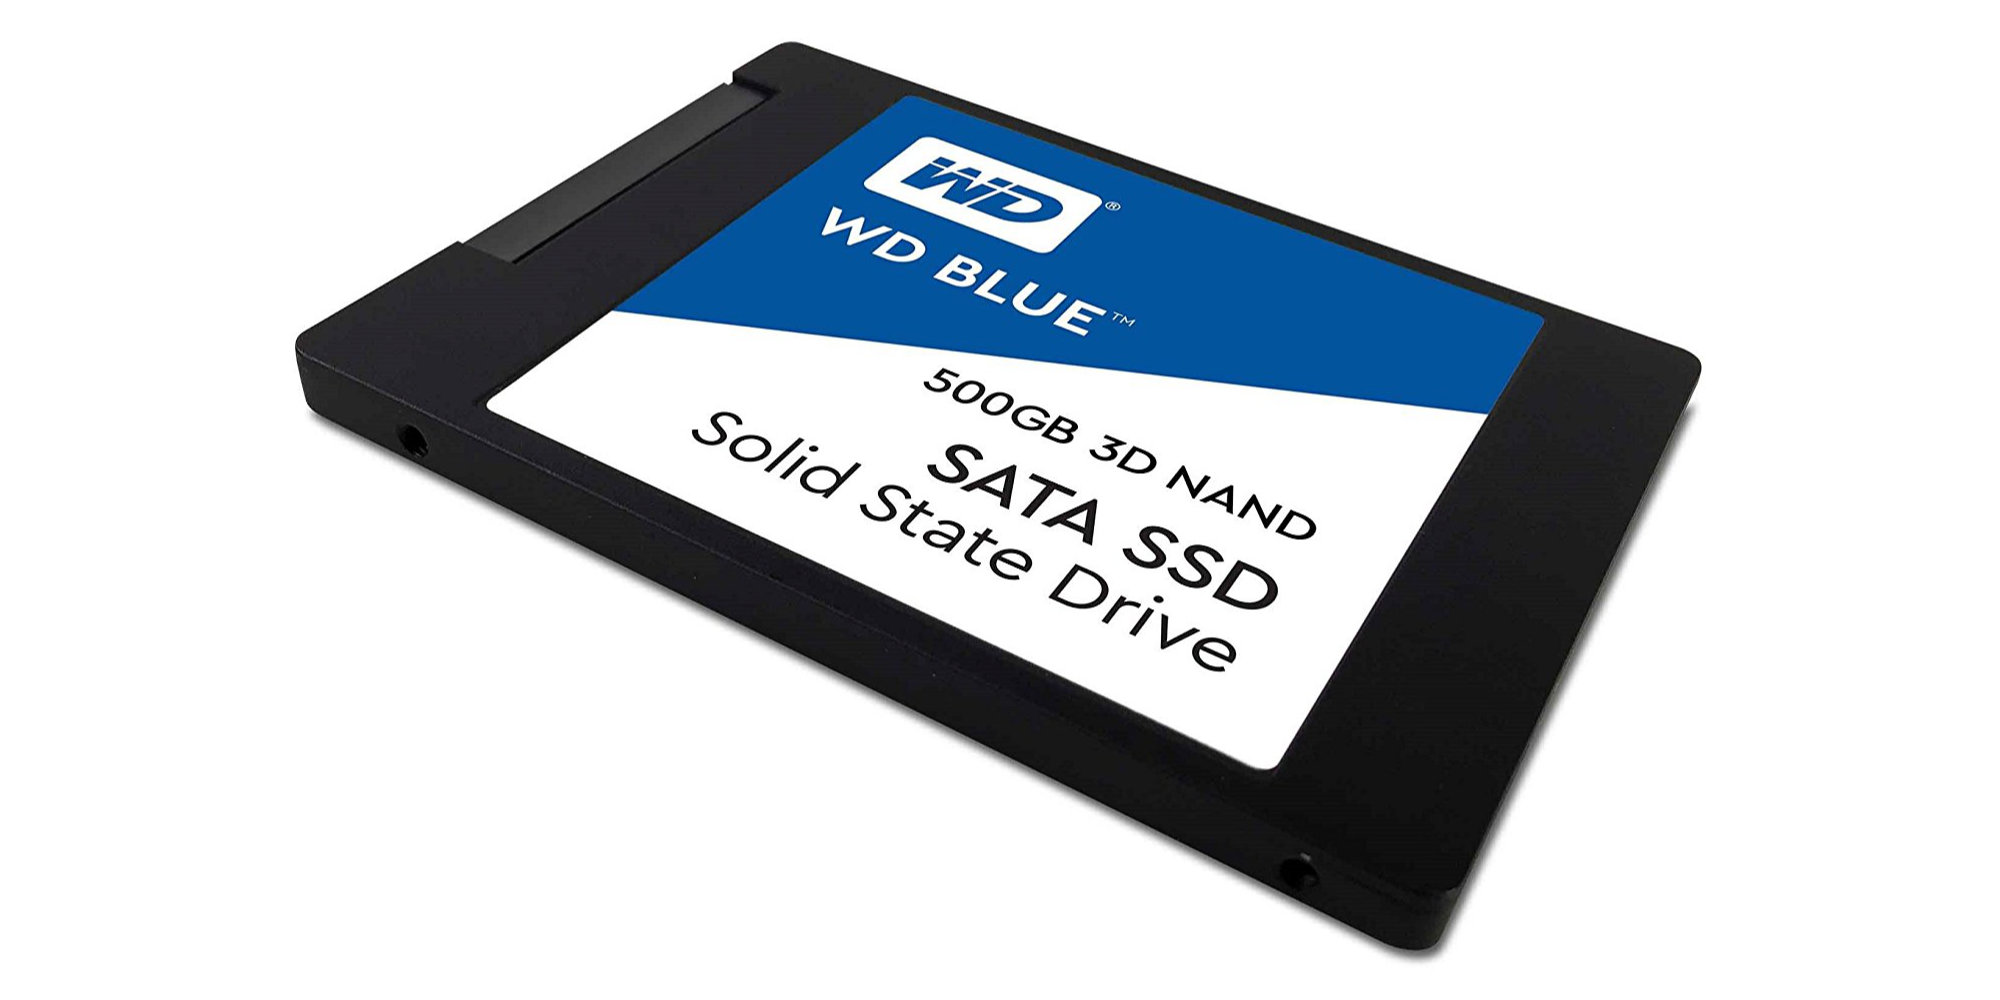 Western Digital's 500GB Solid State Drive returns to $90 shipped (Reg. $105)